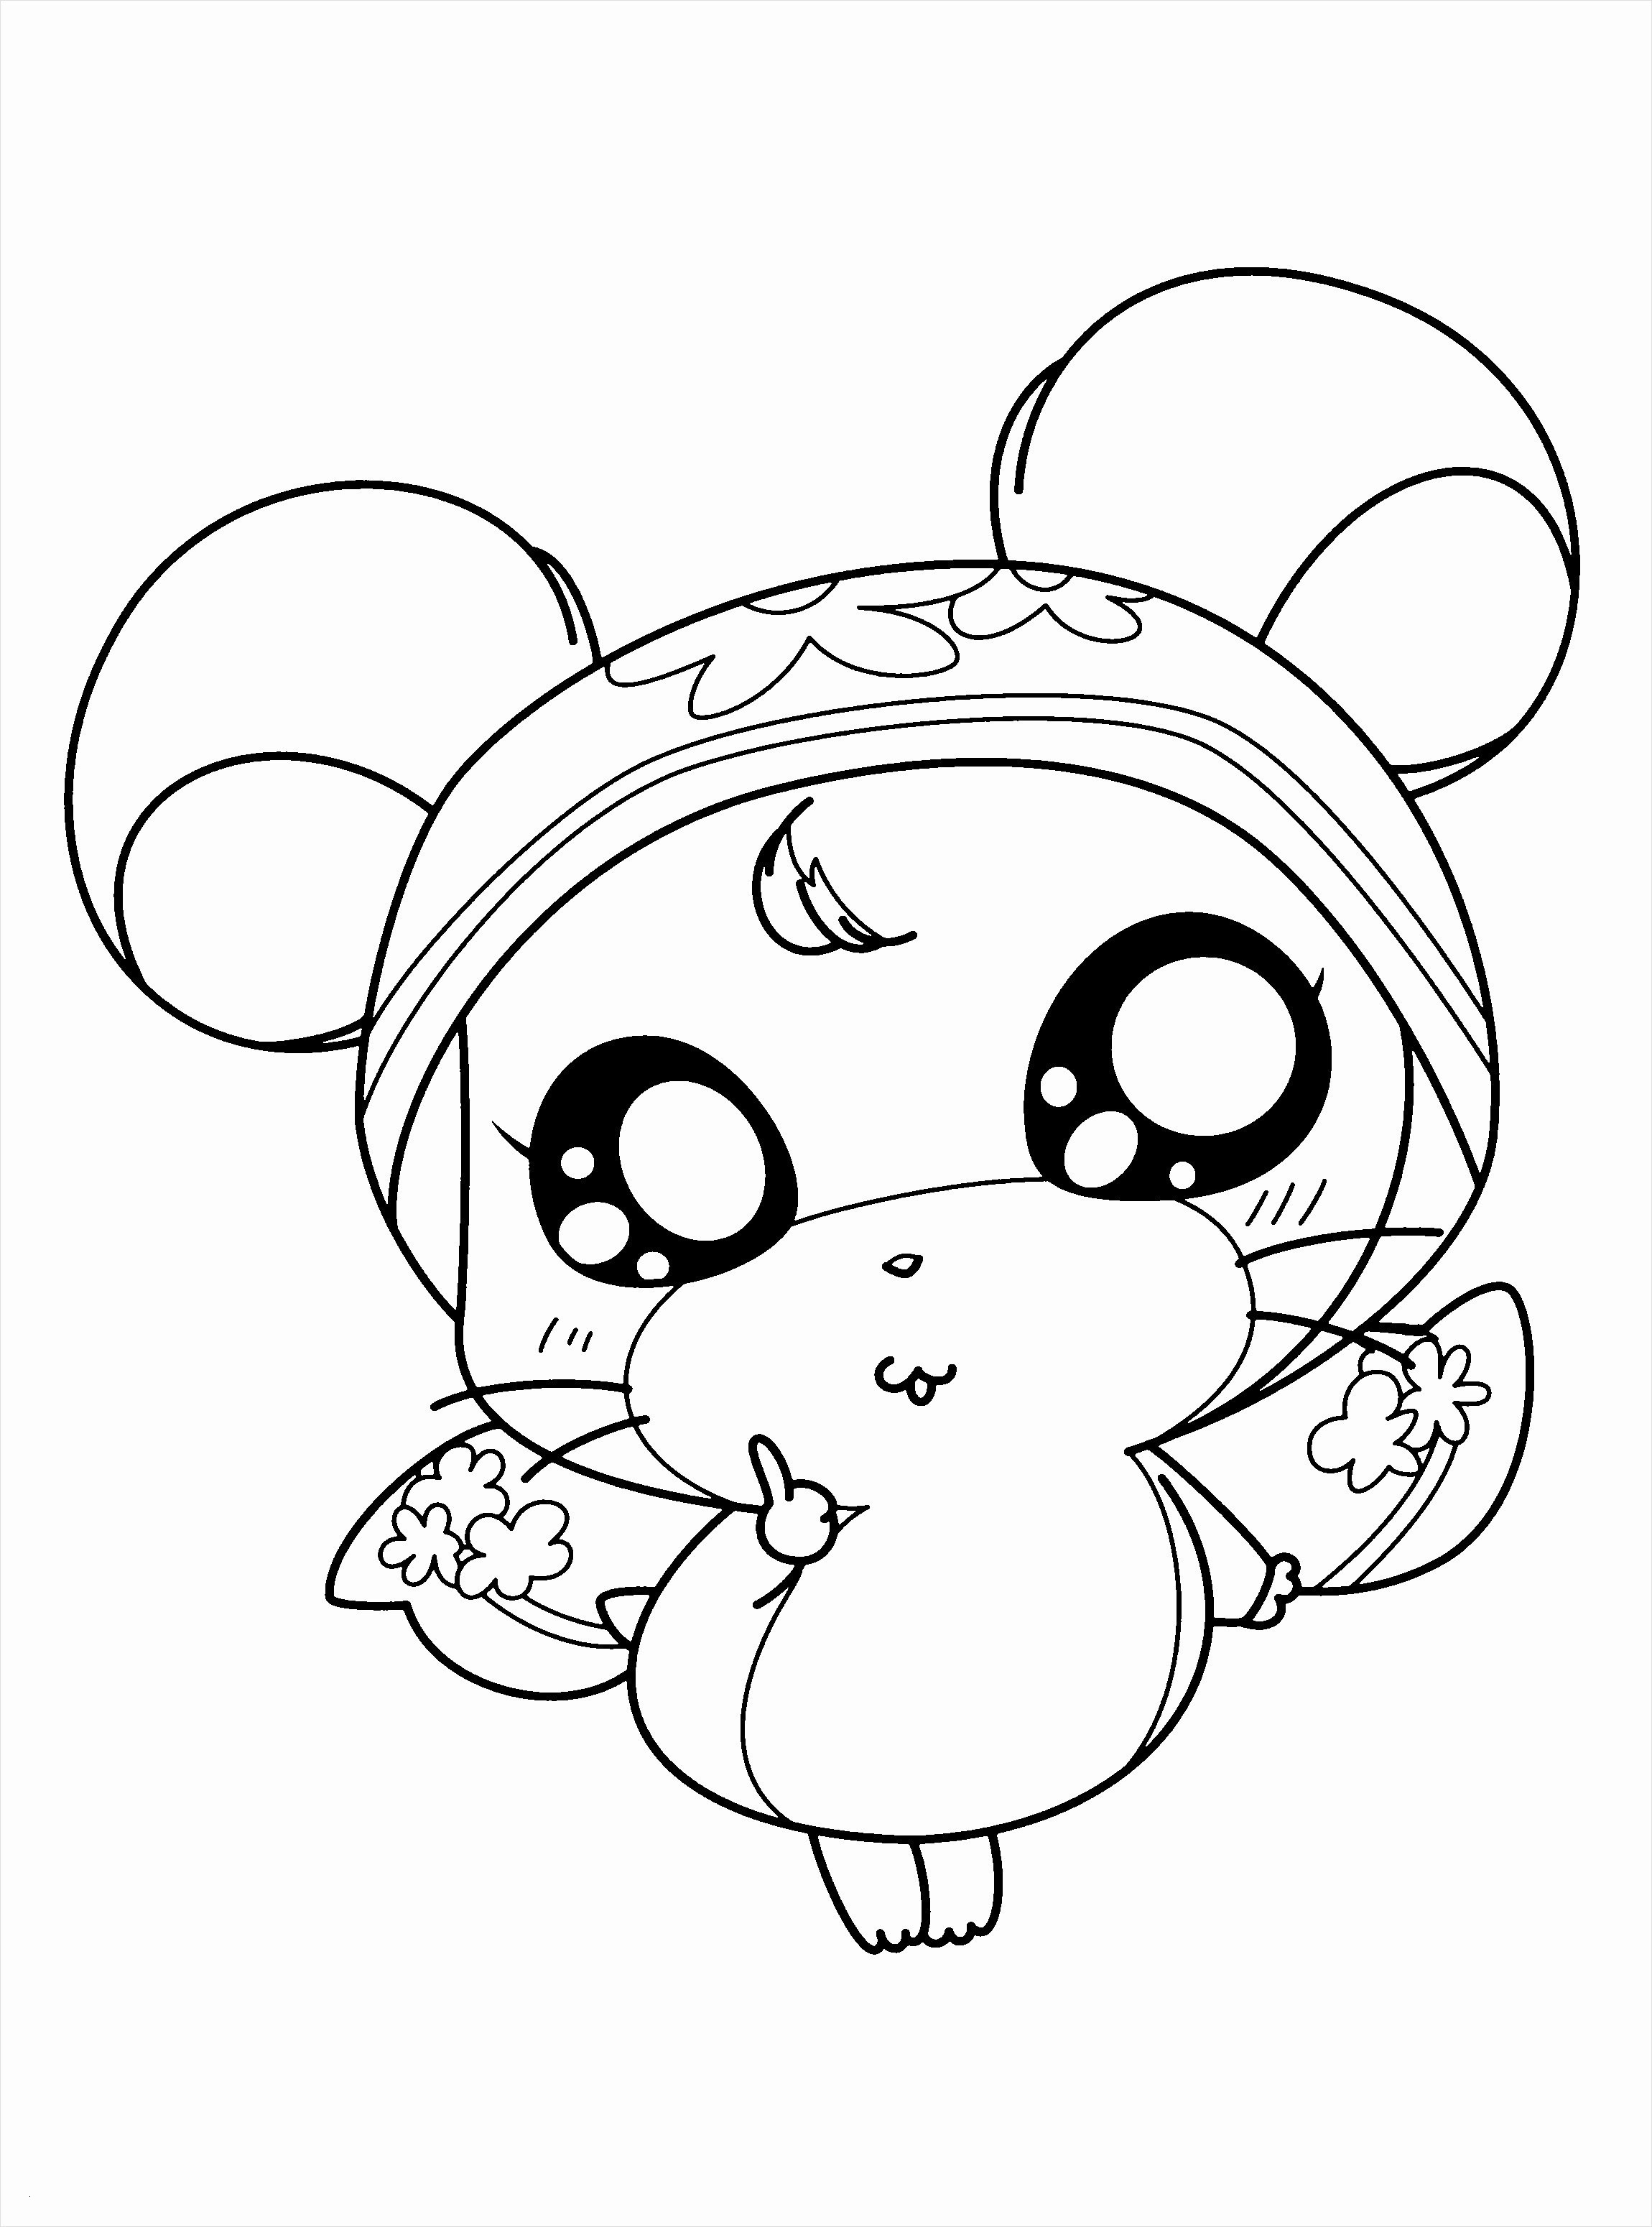 olaf coloring 12 olaf printable coloring pages photo inspirations olaf coloring